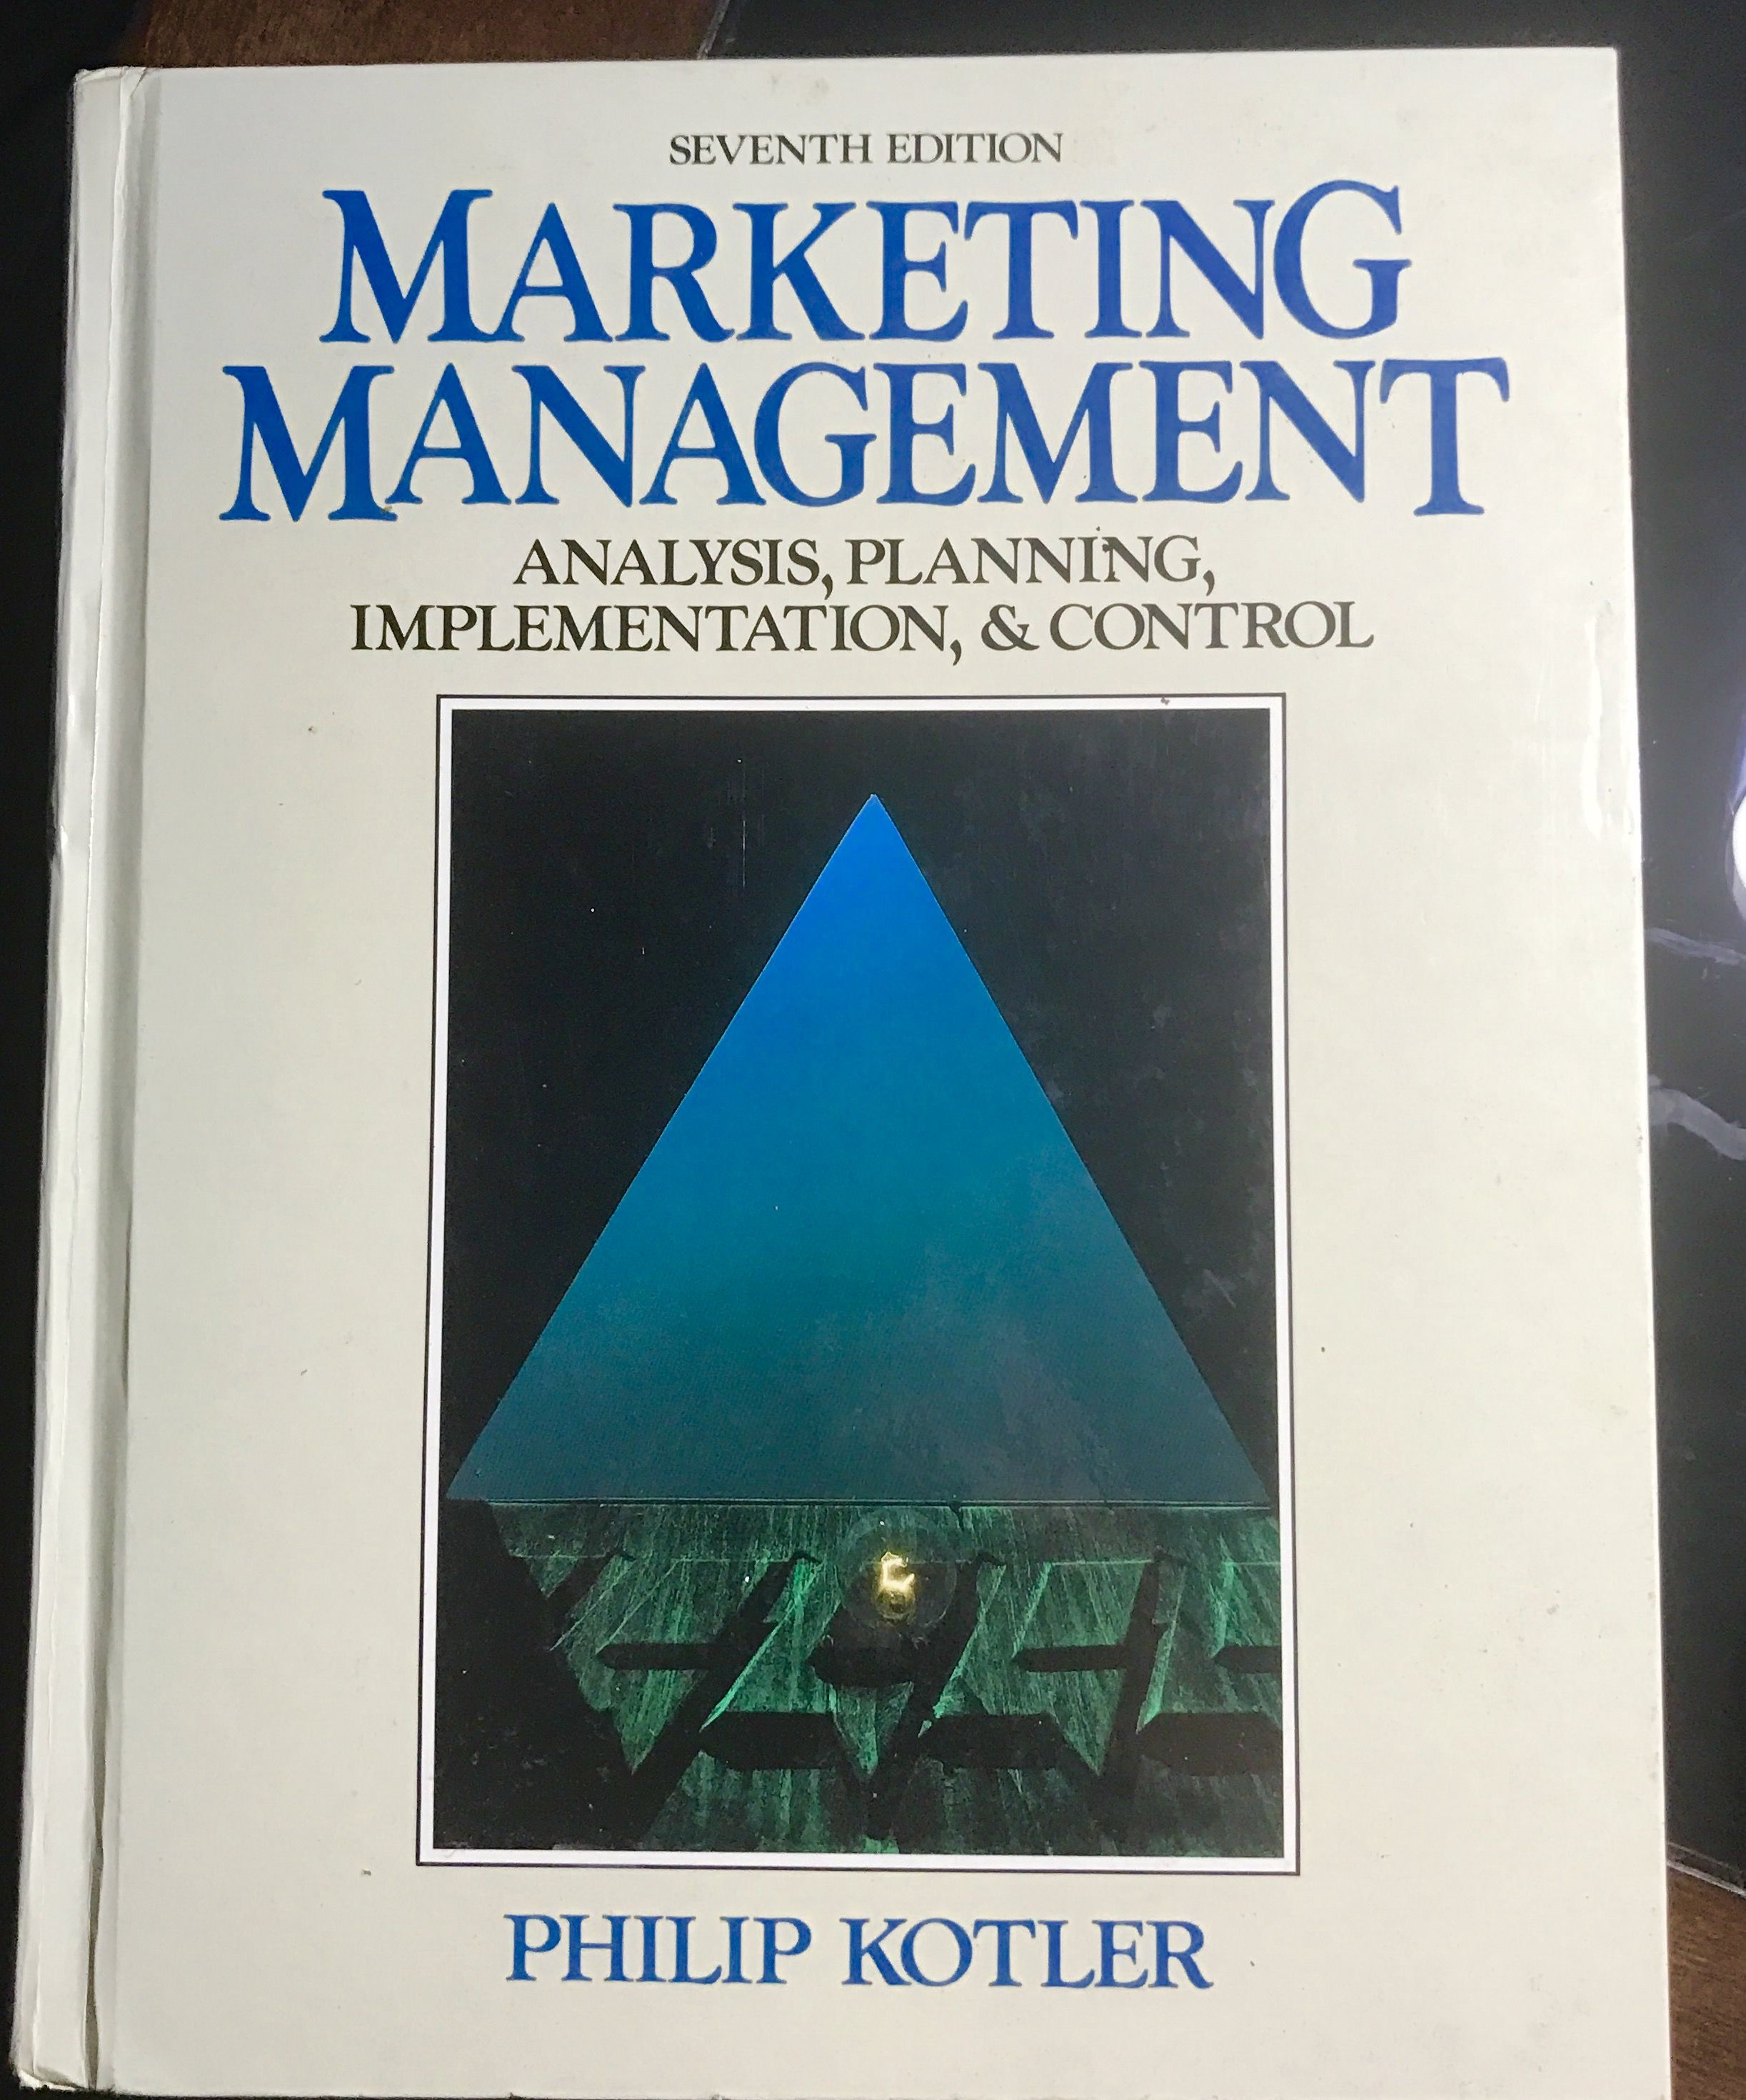 Marketing Management Analysis Planning Implementation And